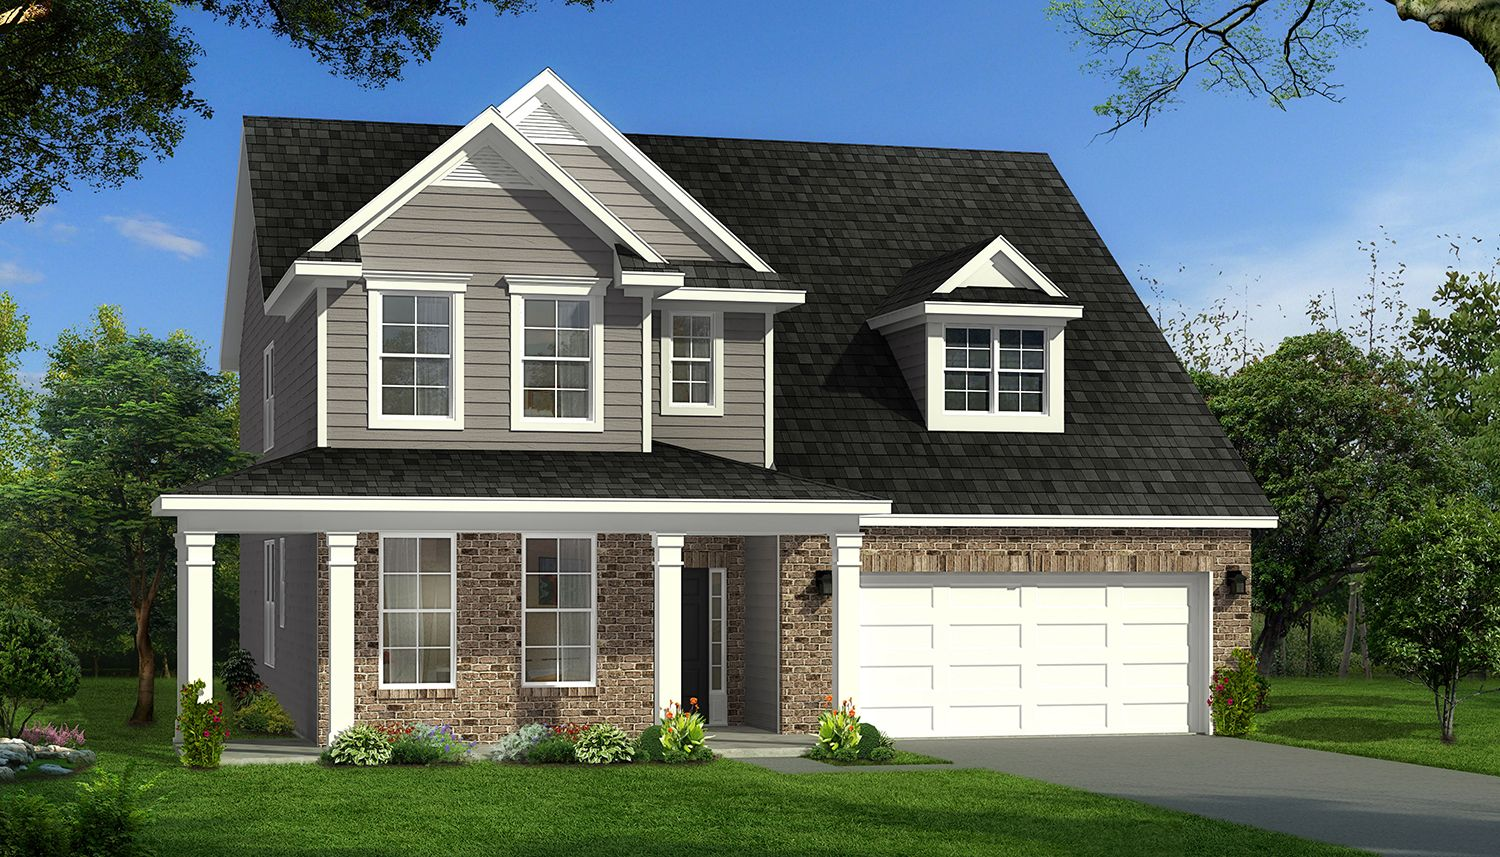 Homebuilder designs in berkeley sc movenewhomes for Home builders south carolina